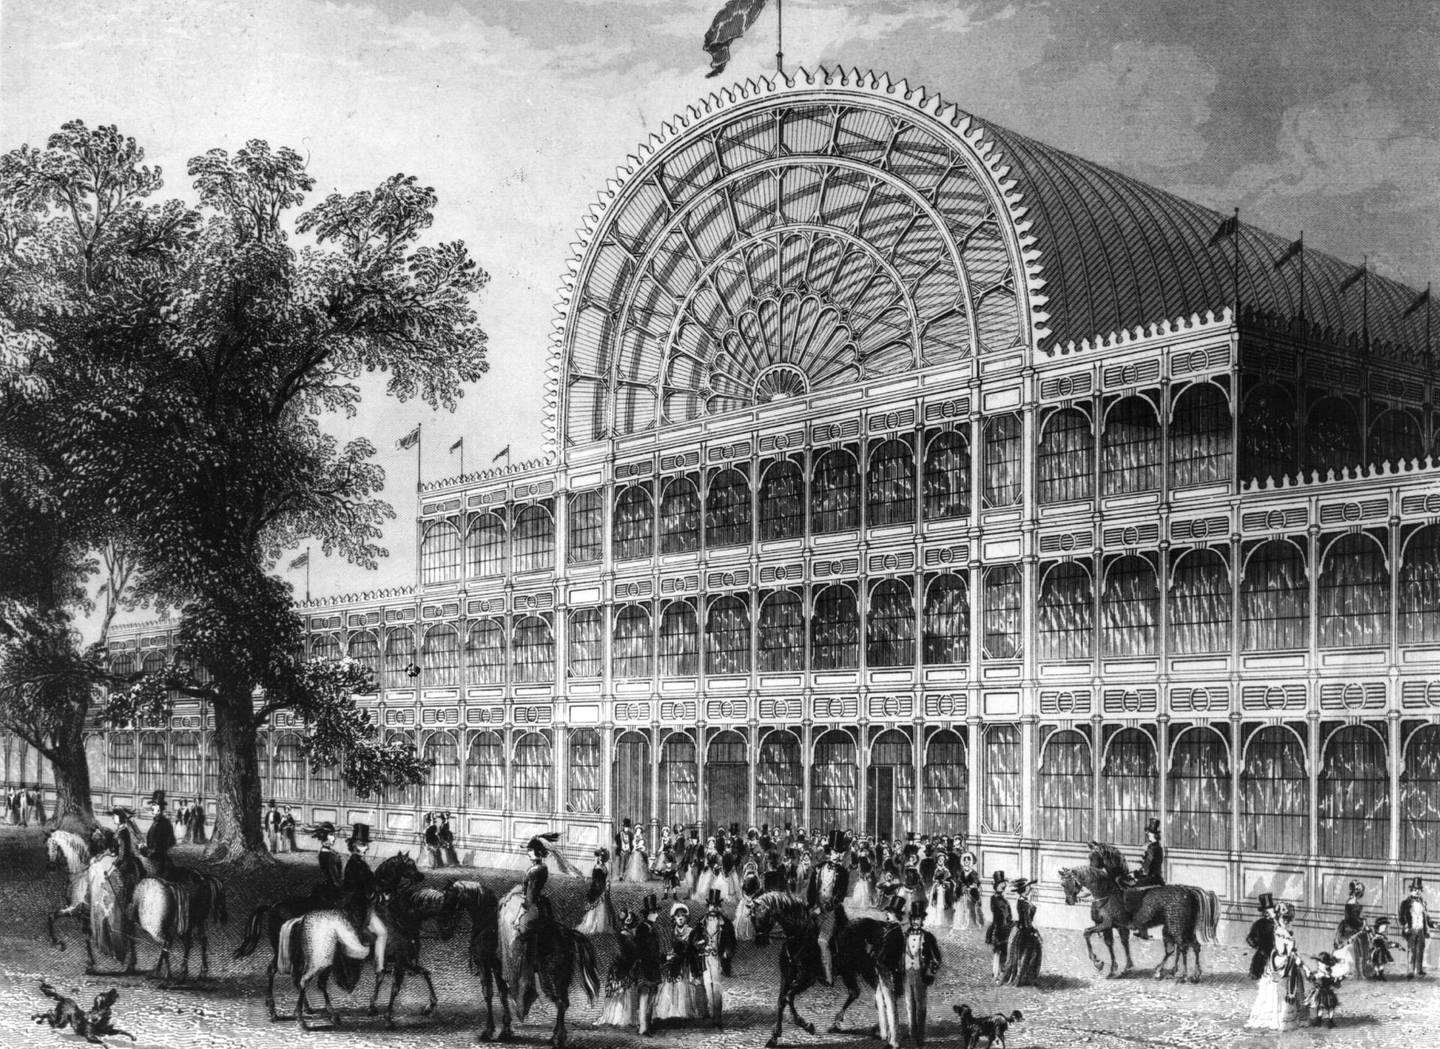 1851:  The facade of Crystal Palace, London, during the Great Exhibition 1851  (Photo by Hulton Archive/Getty Images)